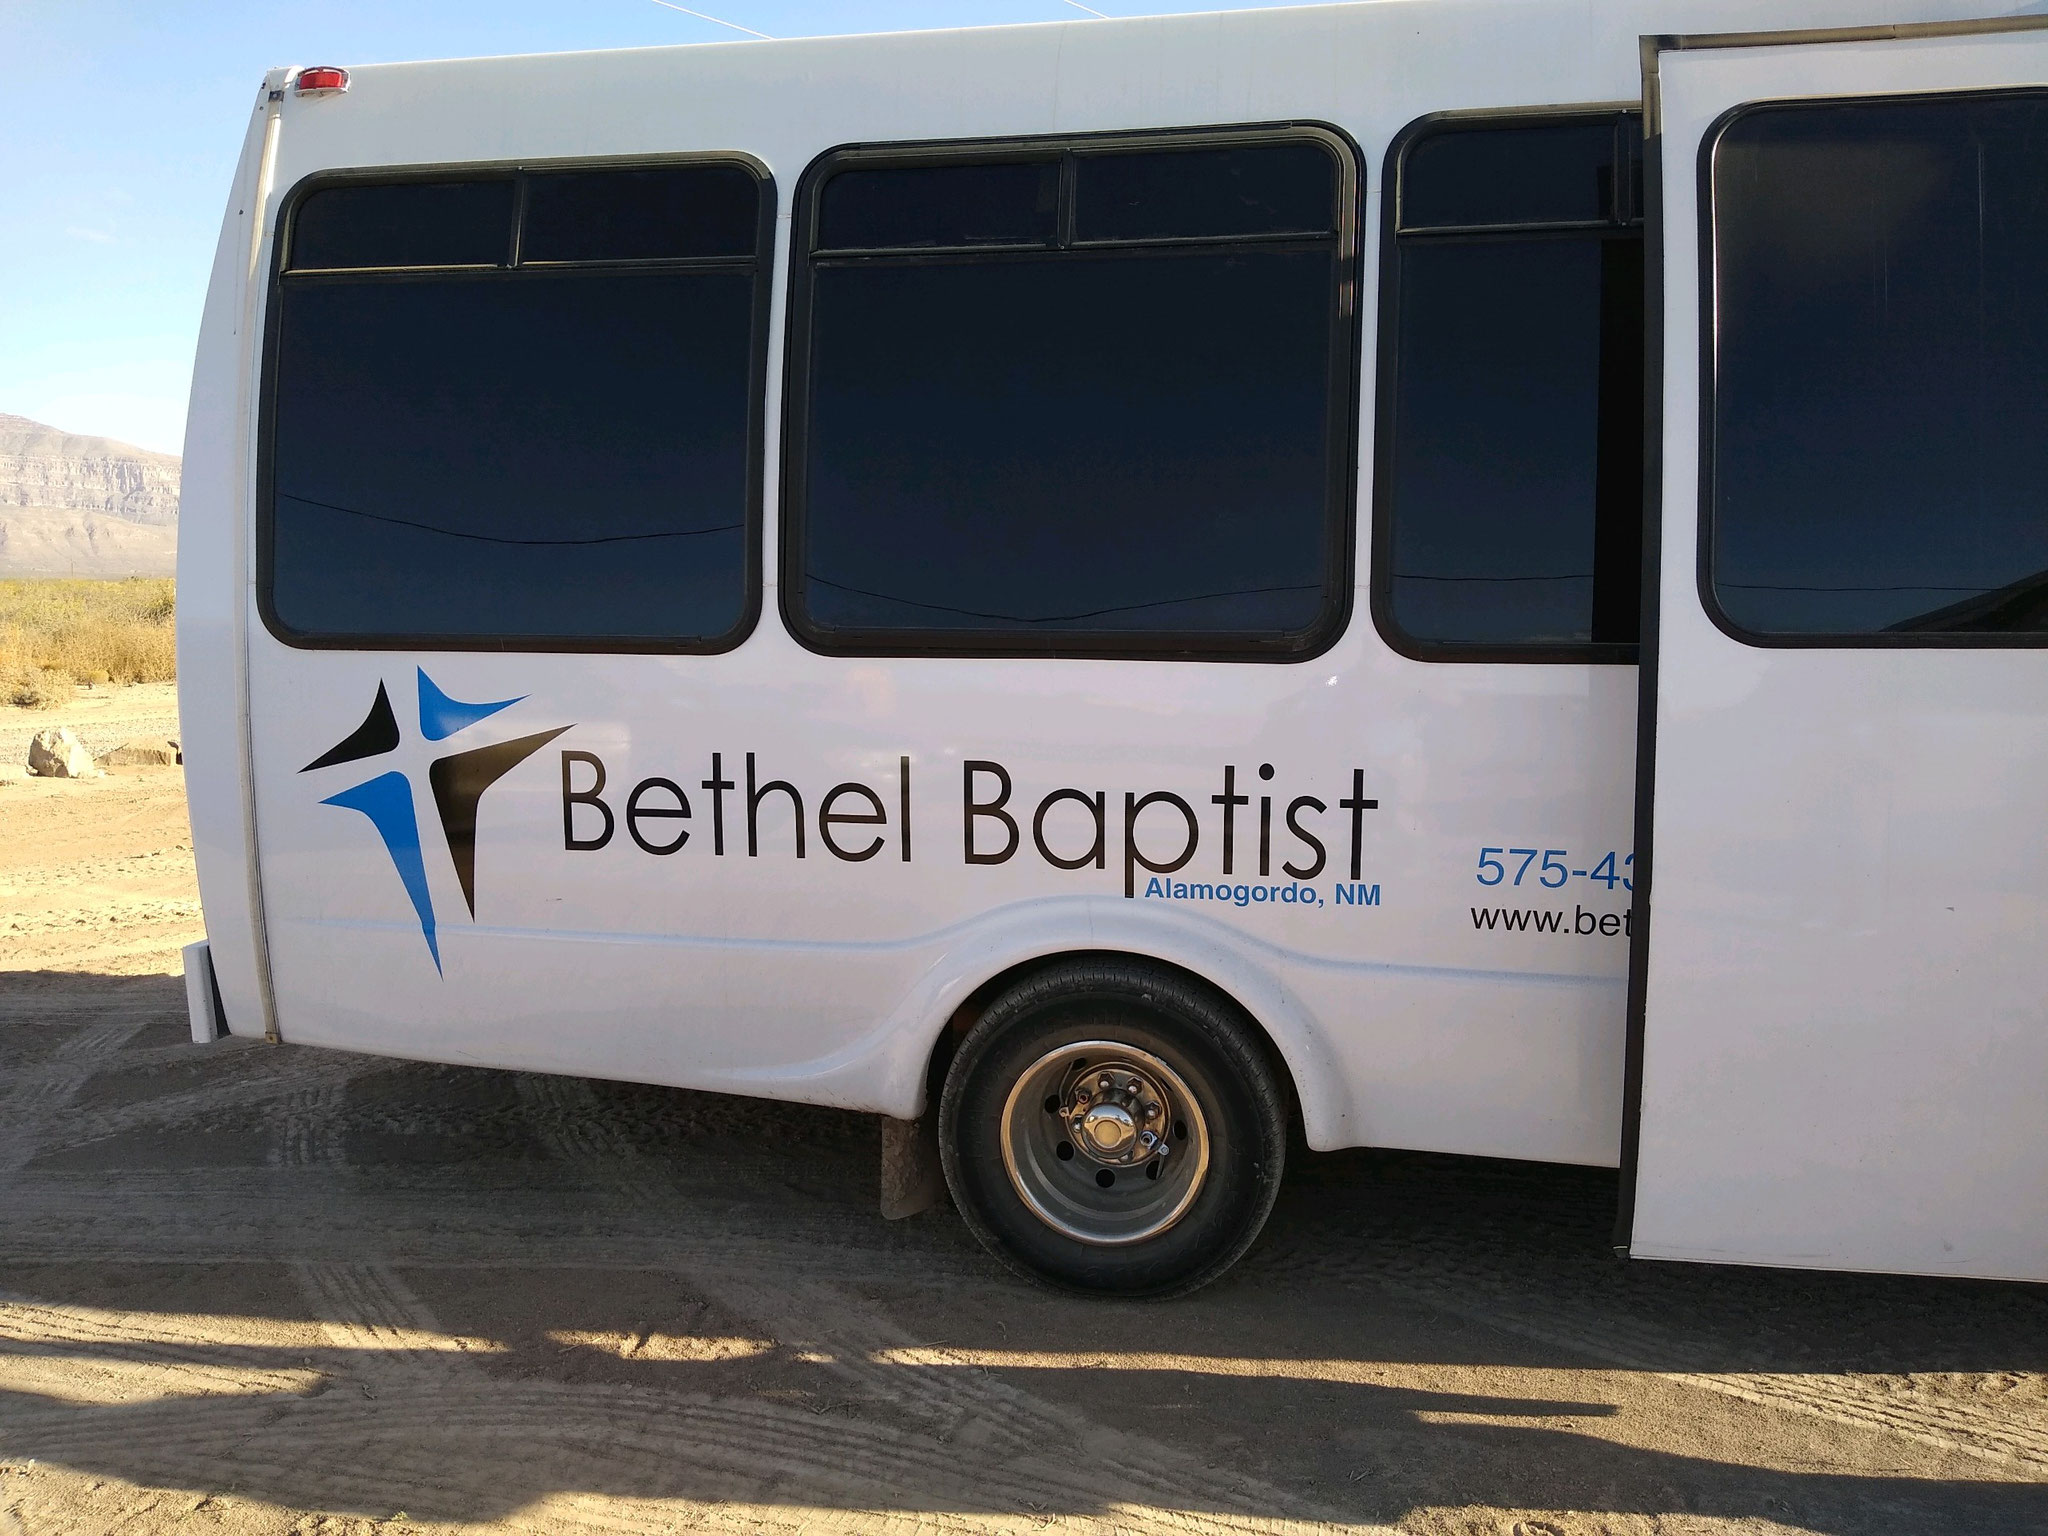 Alexis spoke to the Bethel Women's Group and a couple months later they came out to deliver donations, have lunch, and tour the campus.